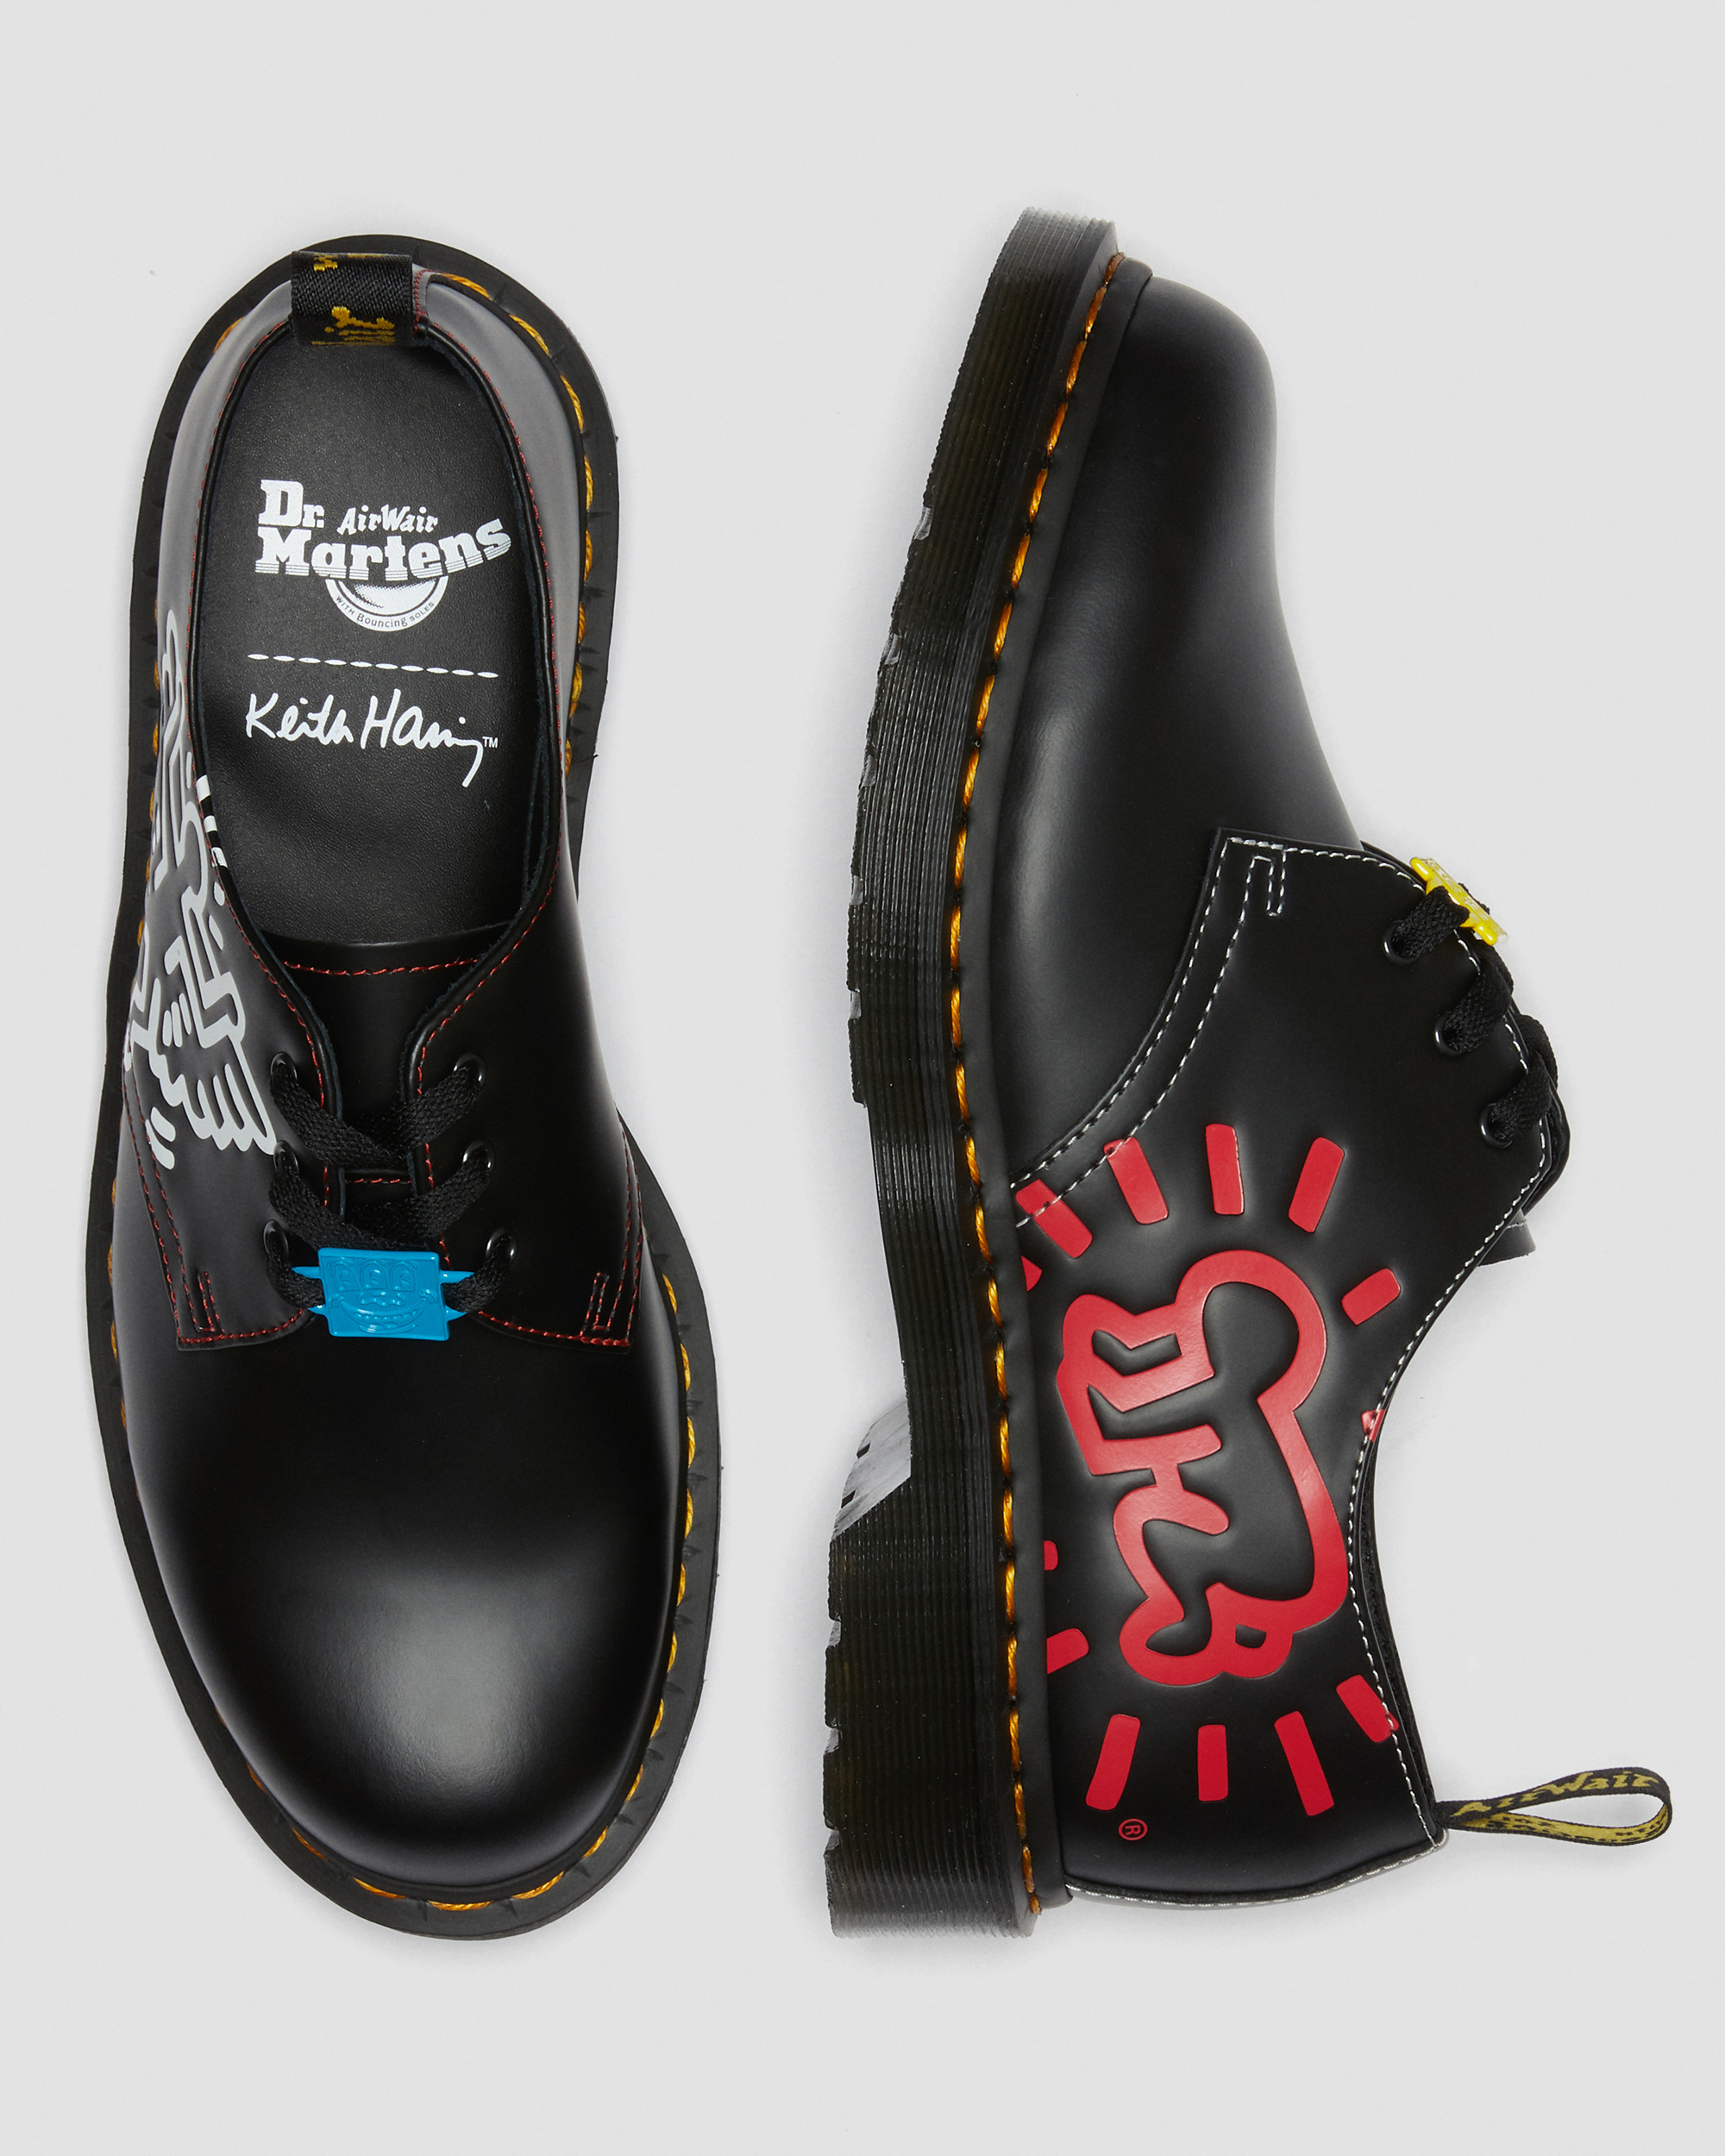 28 Unisex Valentine's Day Gifts: Dr. Martens x Keith Herring 1461 SMOOTH LEATHER OXFORD SHOES